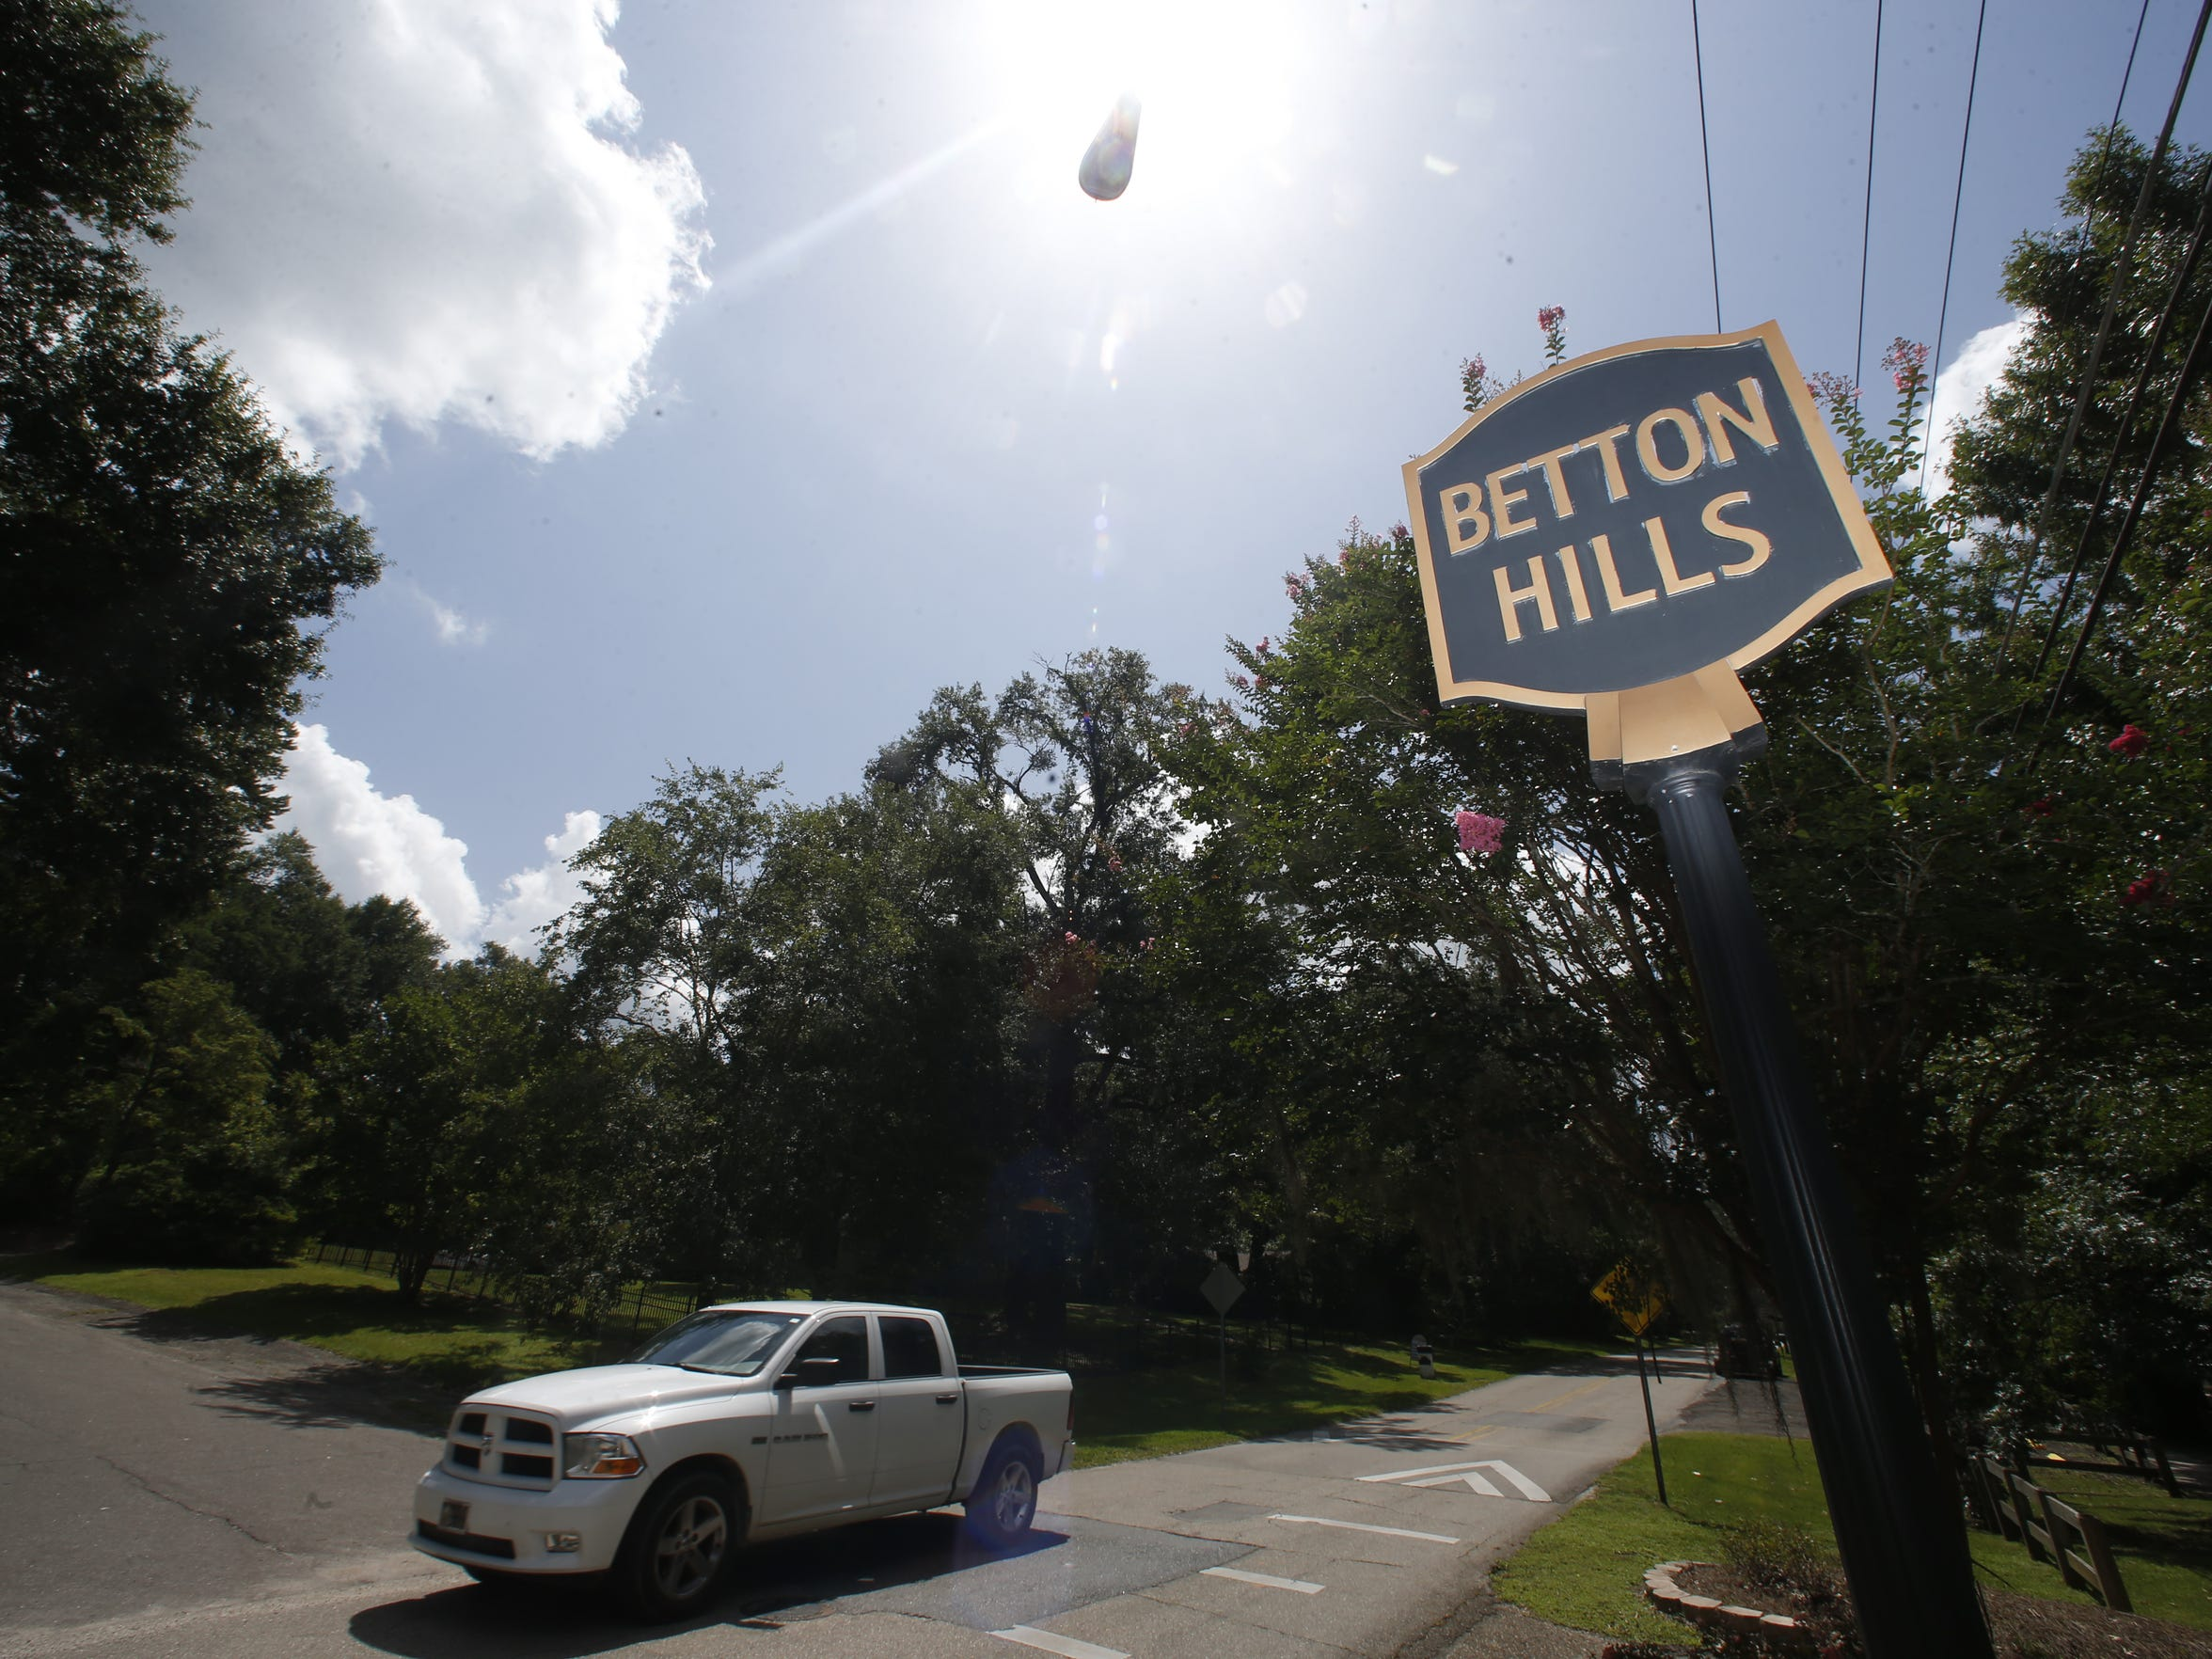 The Betton Hills neighborhood was home to  Florida